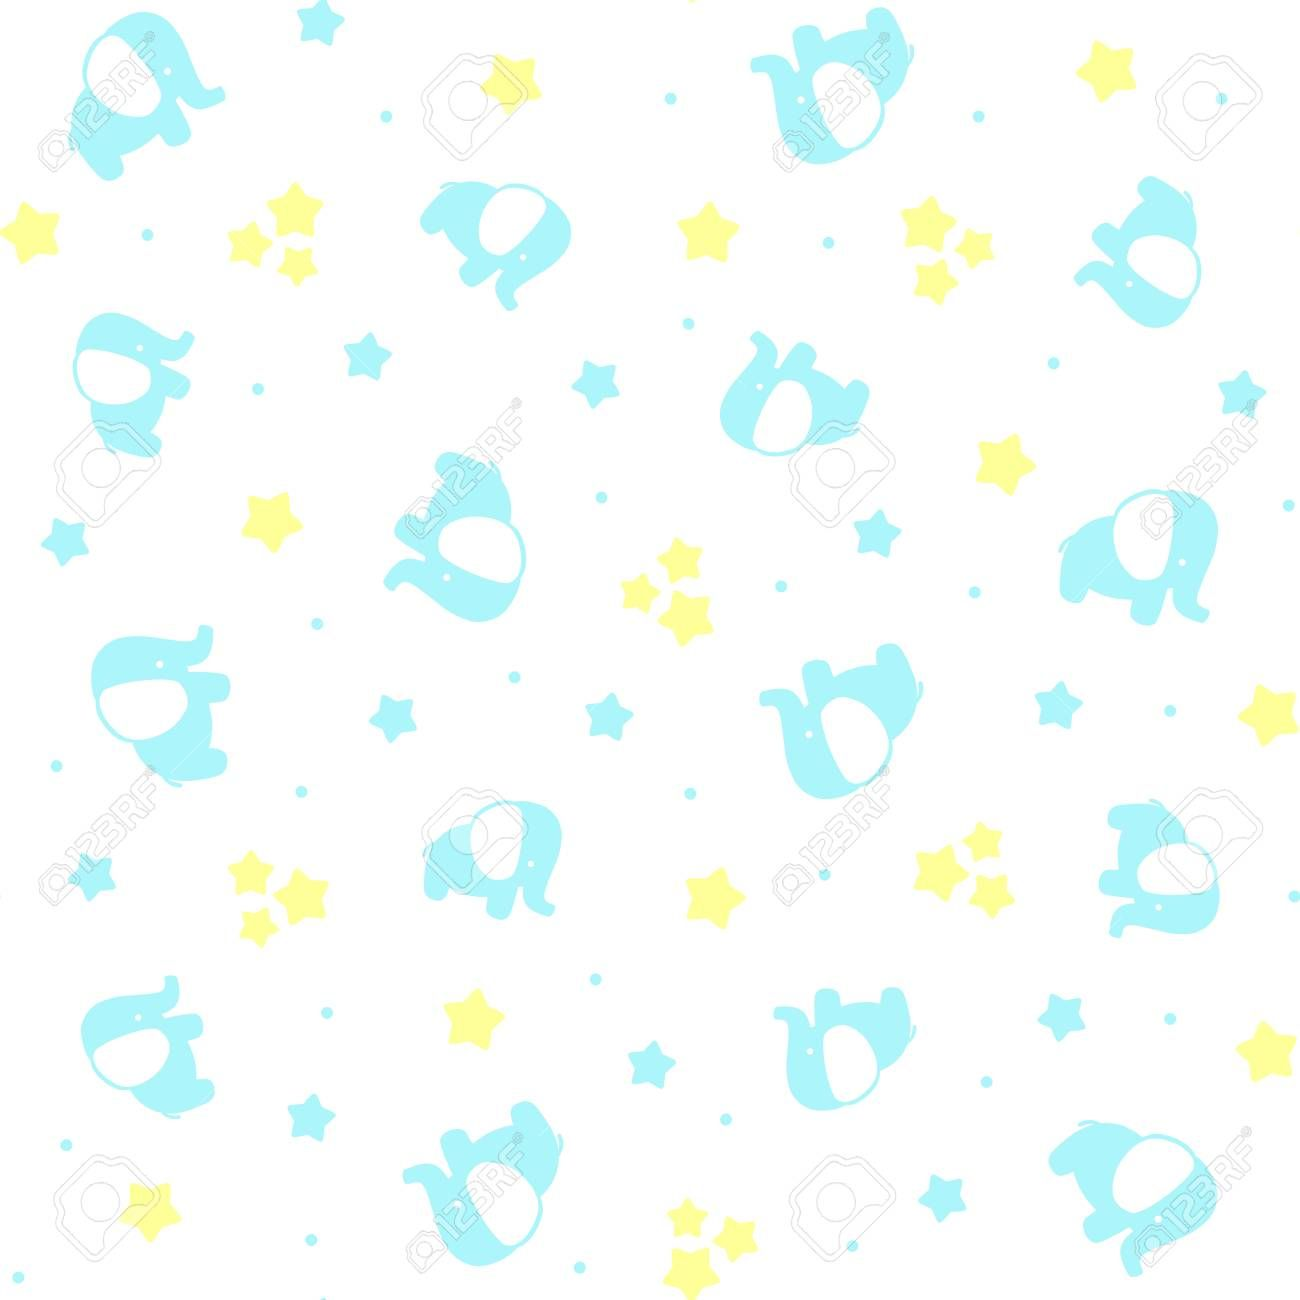 Cute Baby Elephants Seamless Pattern With Stars And Dots On White Background Design For Baby Boy And Children Cute Baby Elephant Baby Elephant Cute Babies